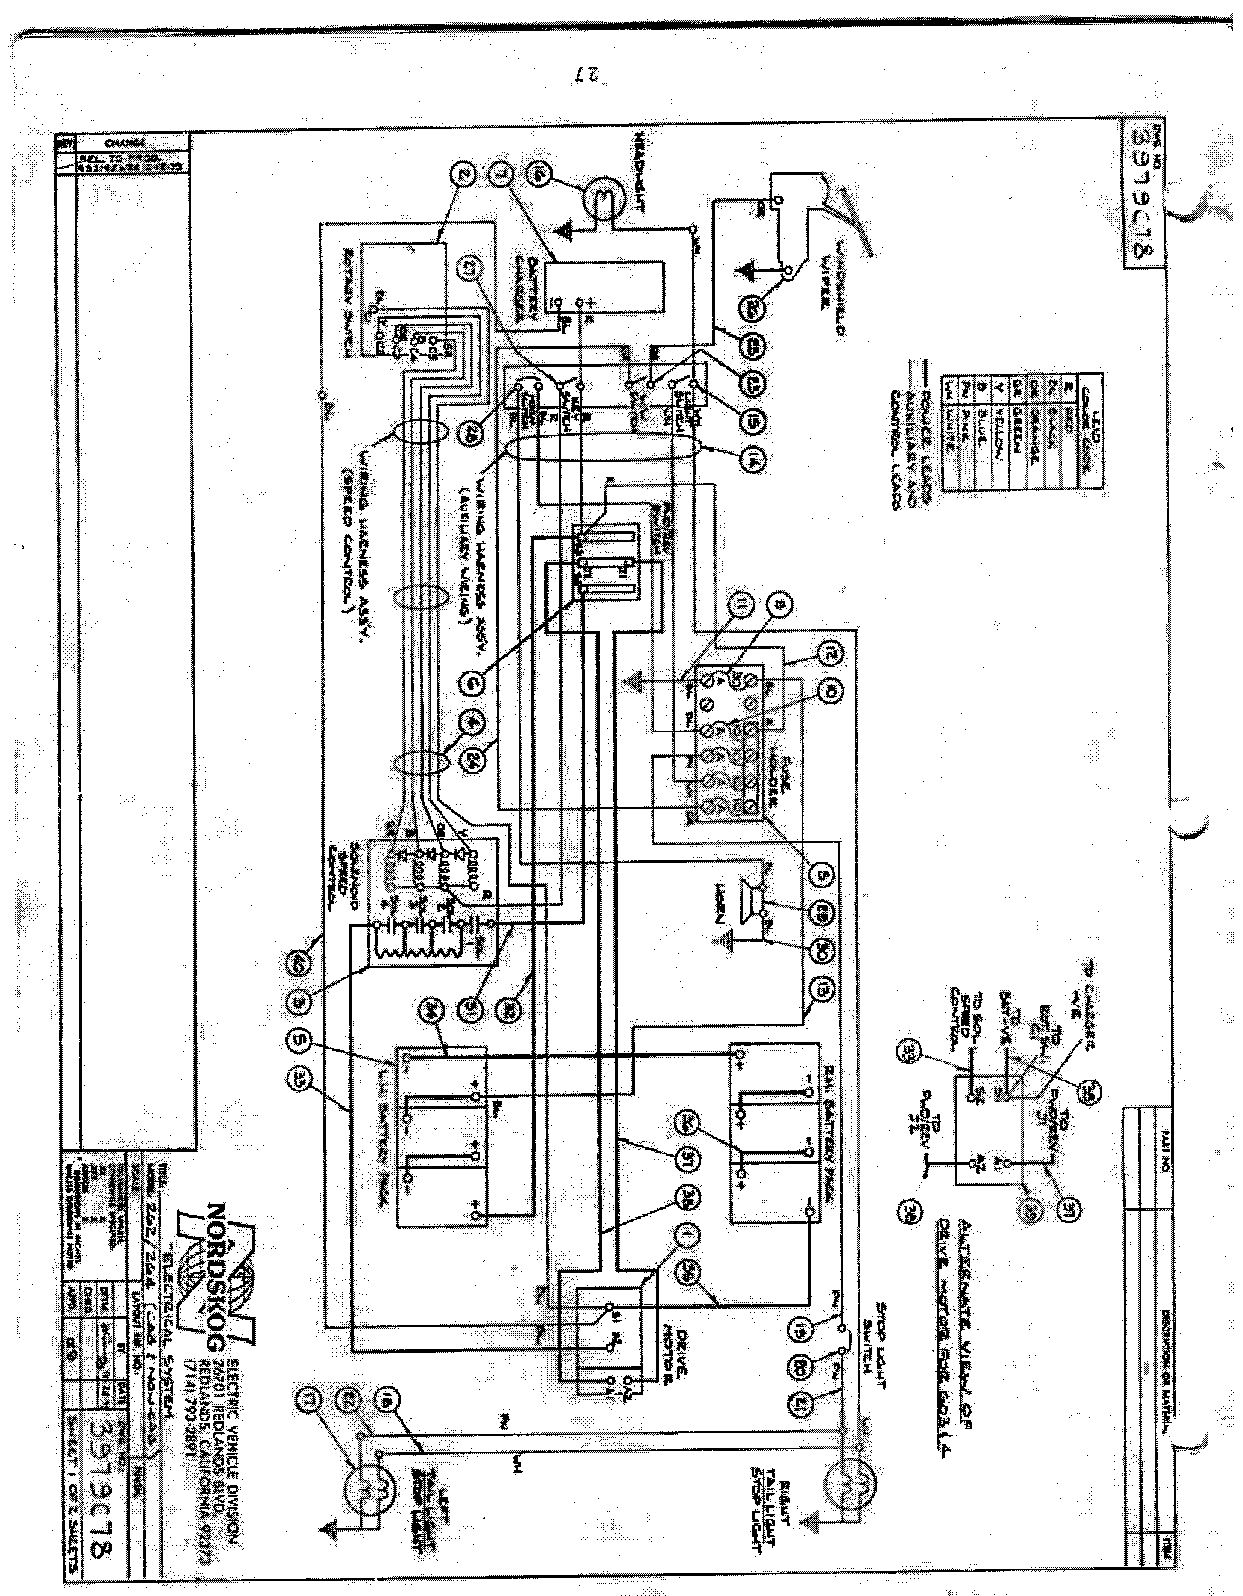 Model 412 Melex Golf Cart Wiring Diagram Great Design Of Club Car Precedent Battery Cartaholics 512 And Schematics Cushman